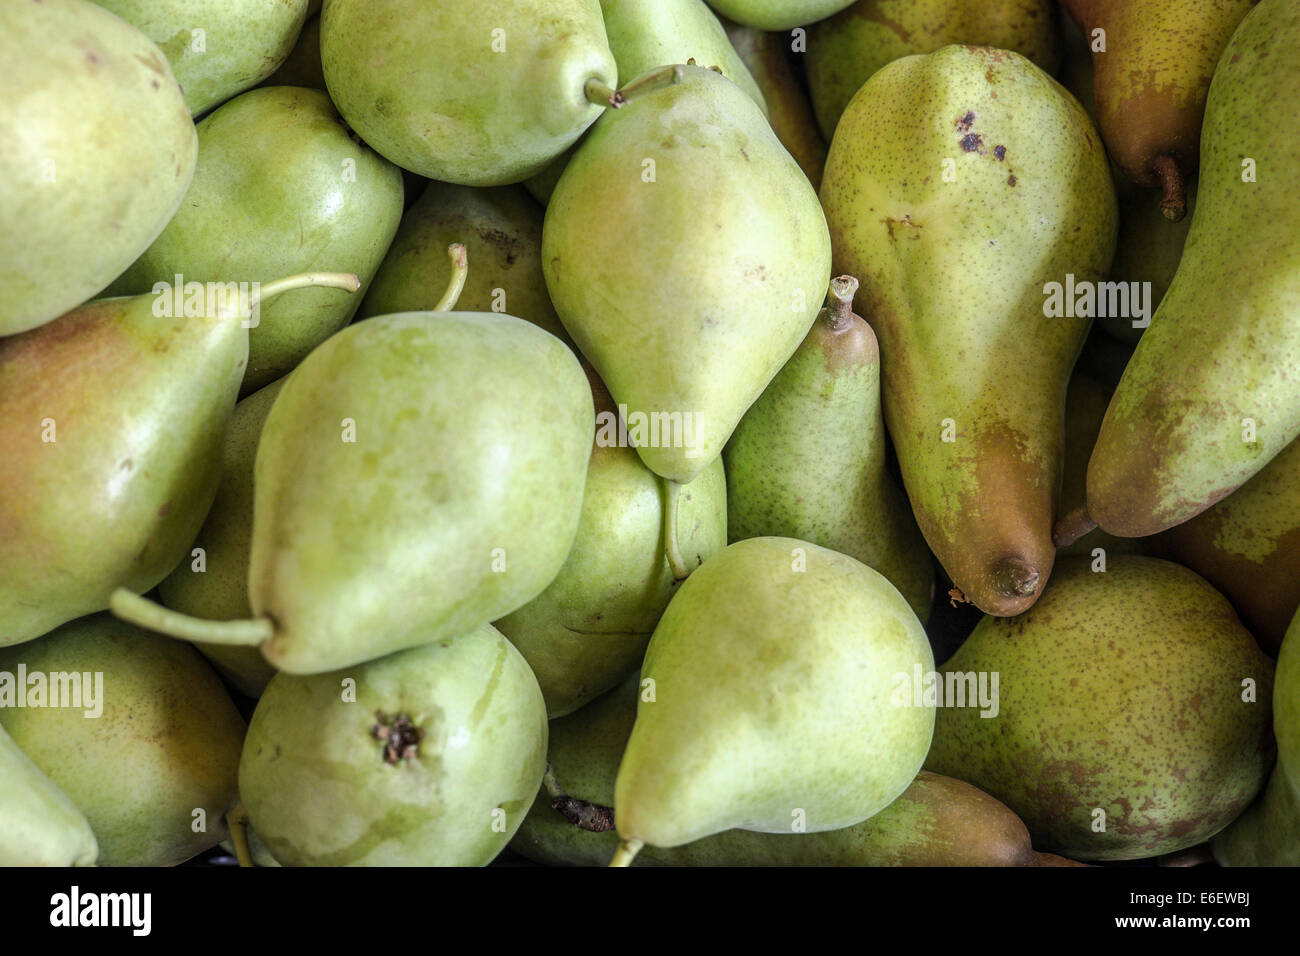 Pears of Spanish farms during Russian boycott food to UE - Stock Image